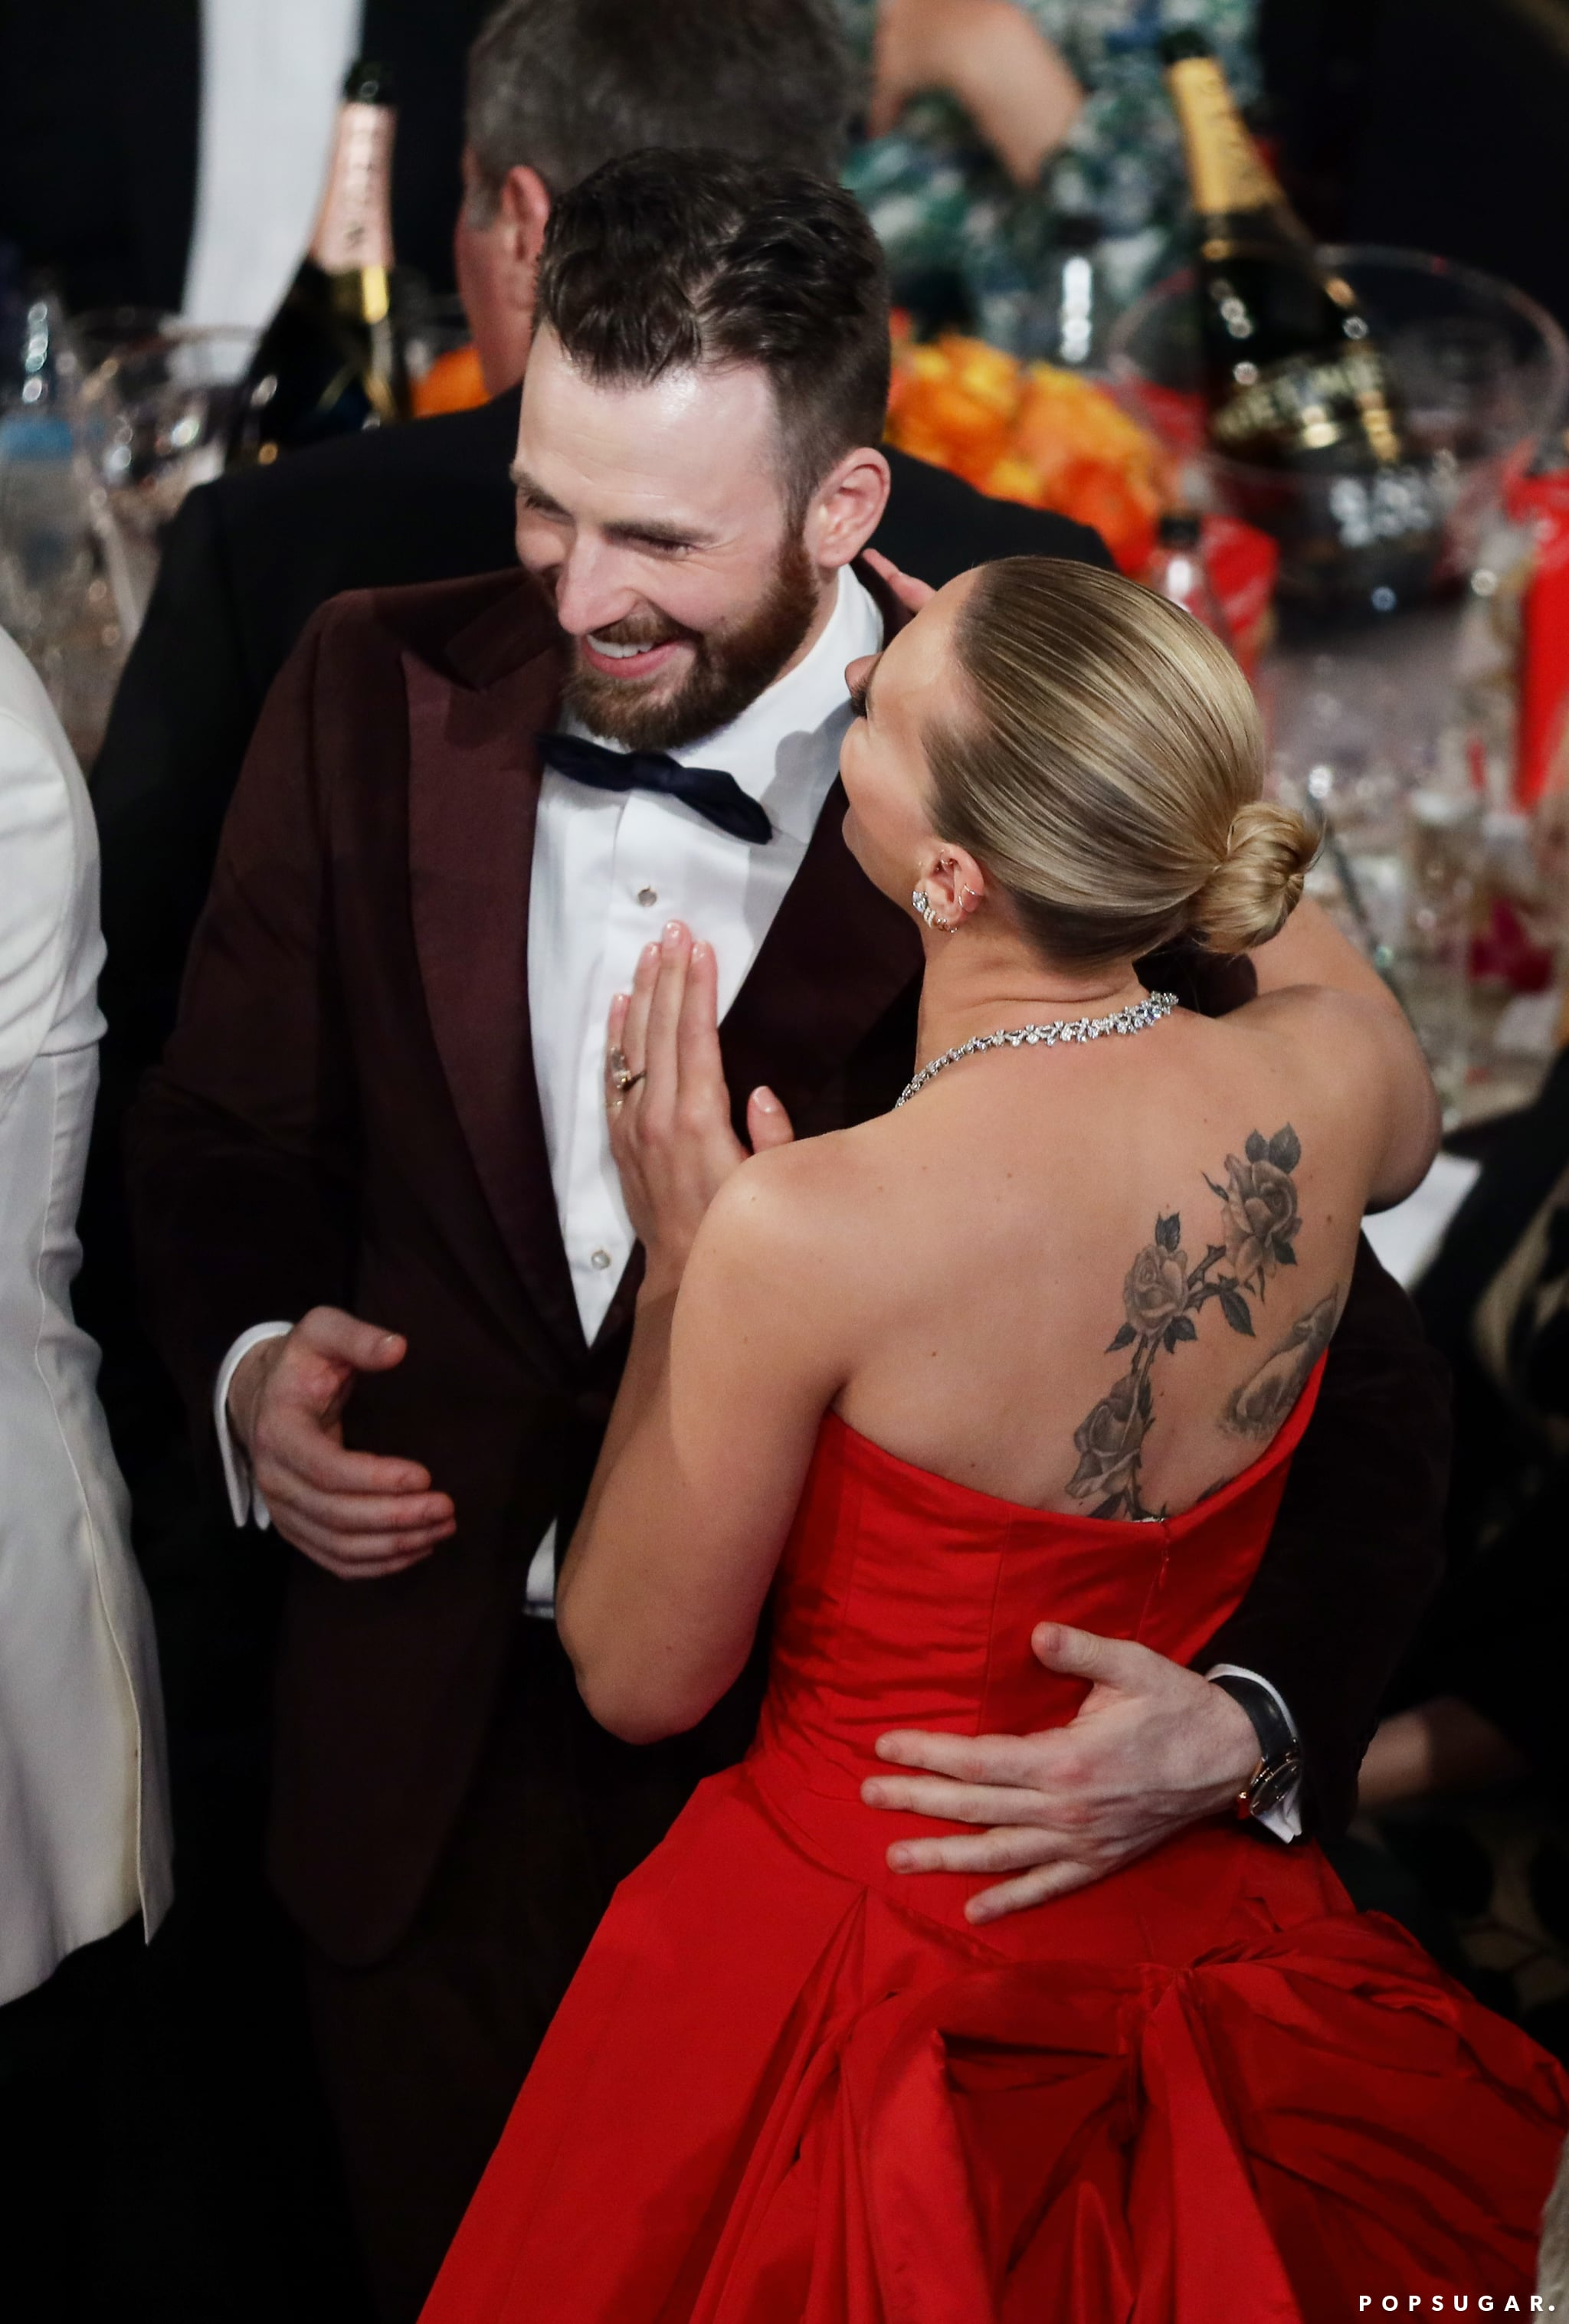 Chris Evans And Scarlett Johansson At The 2020 Golden Globes We Guarantee You Didn T Catch These Moments At The 2020 Golden Globe Awards Popsugar Celebrity Photo 97